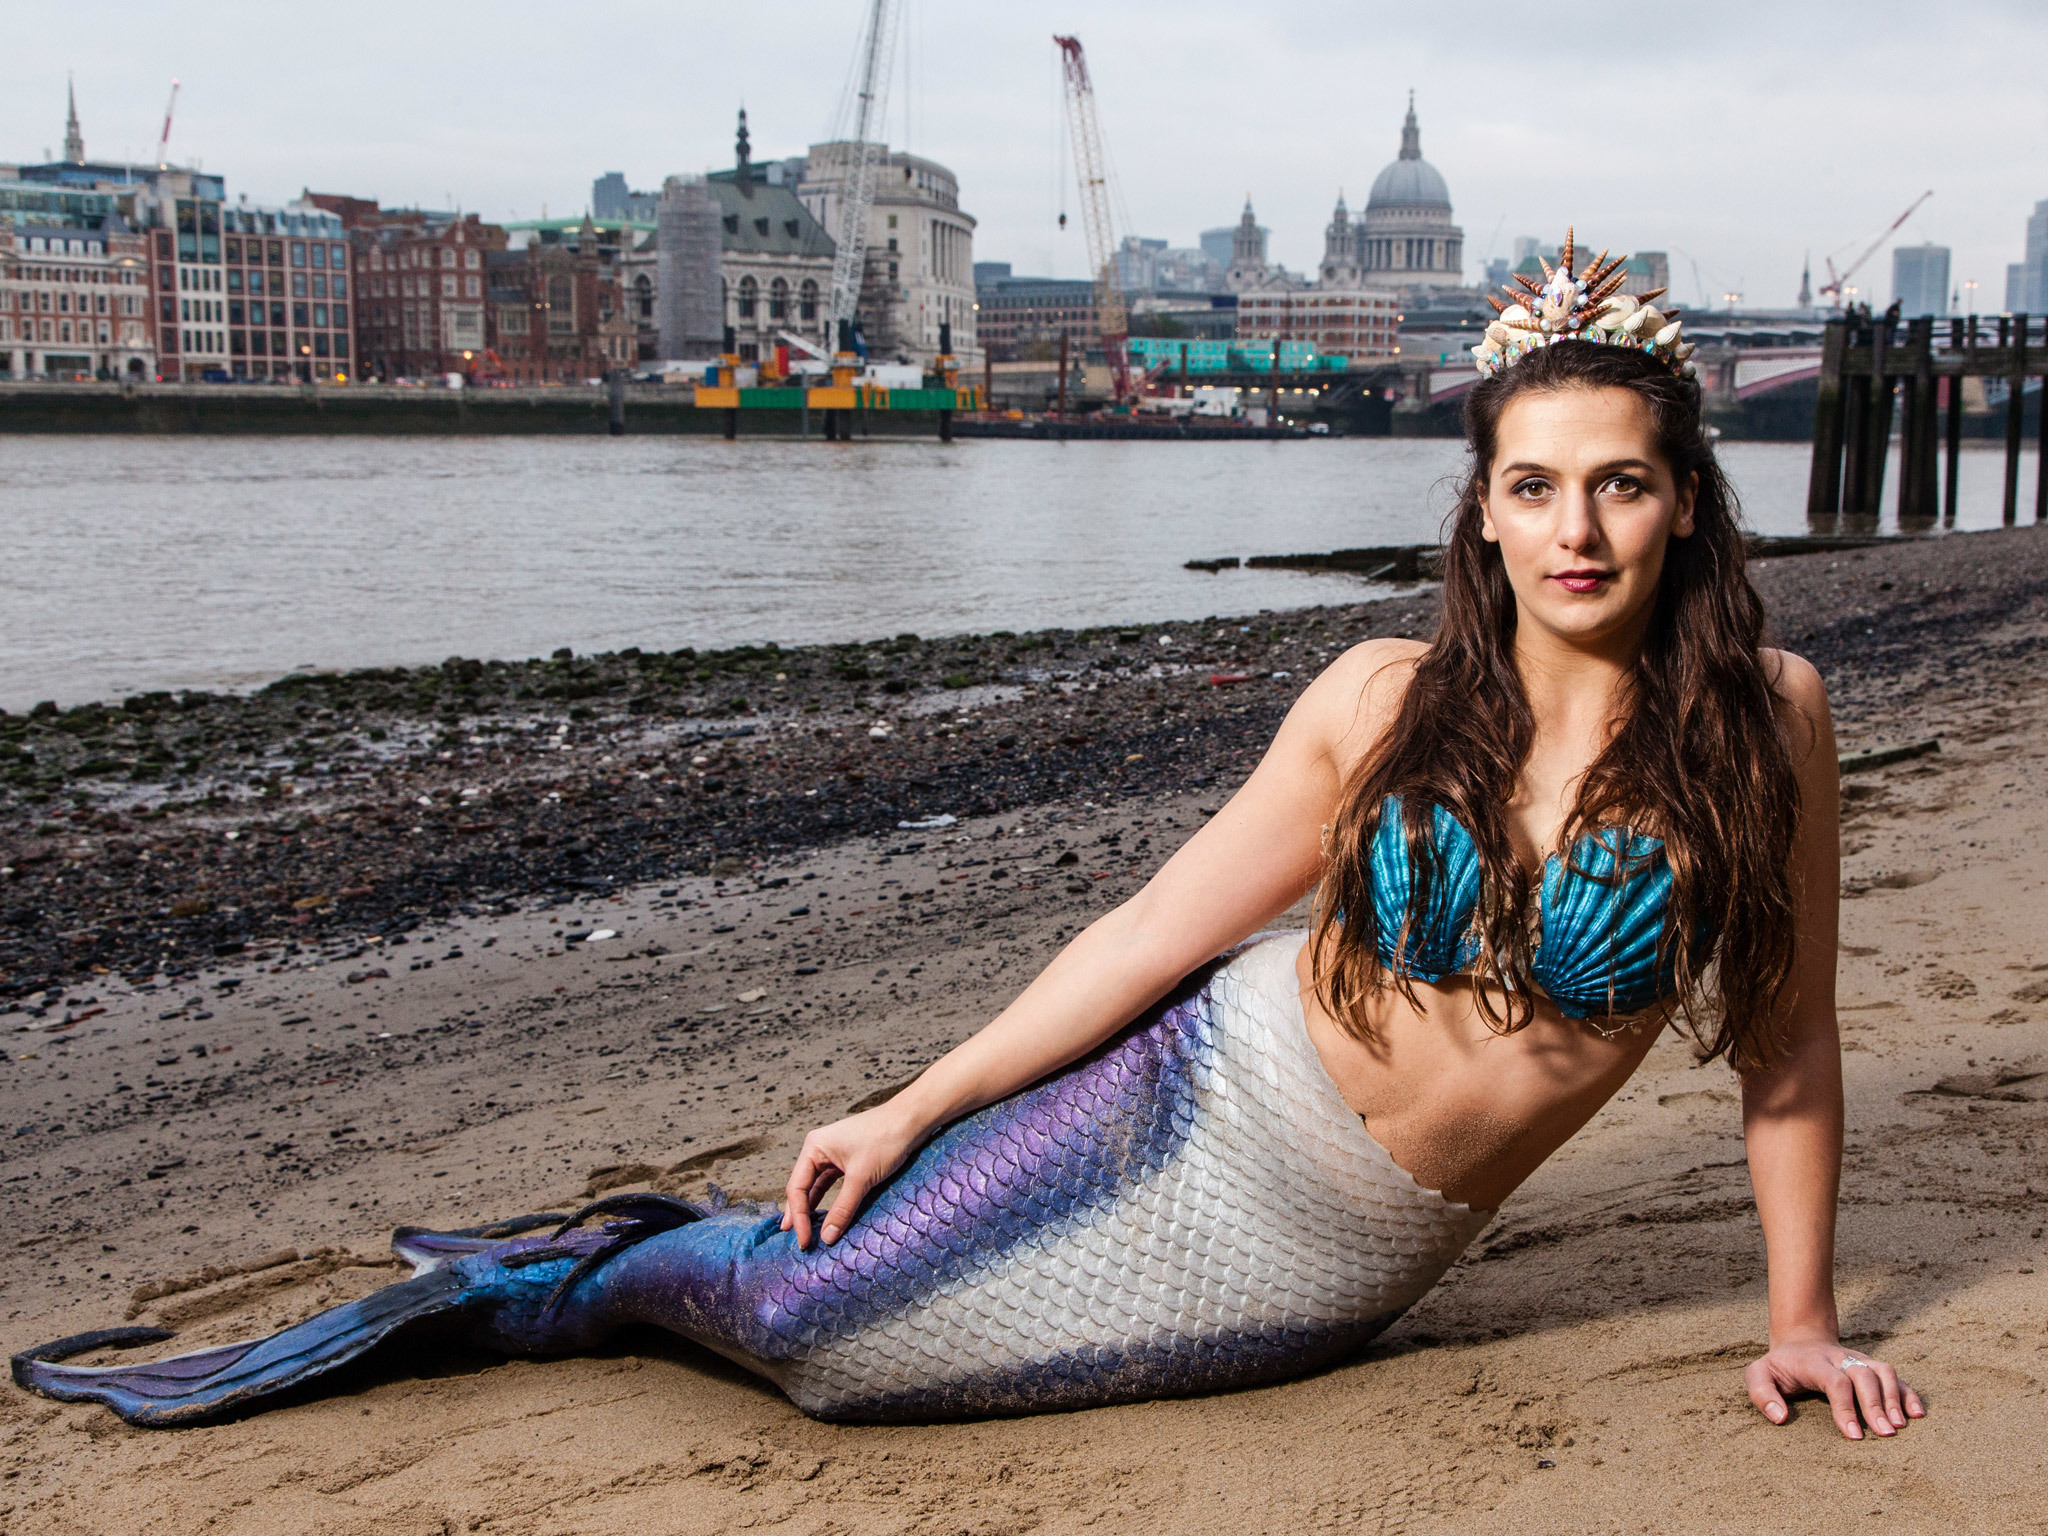 Samantha Smallwood, professional mermaid